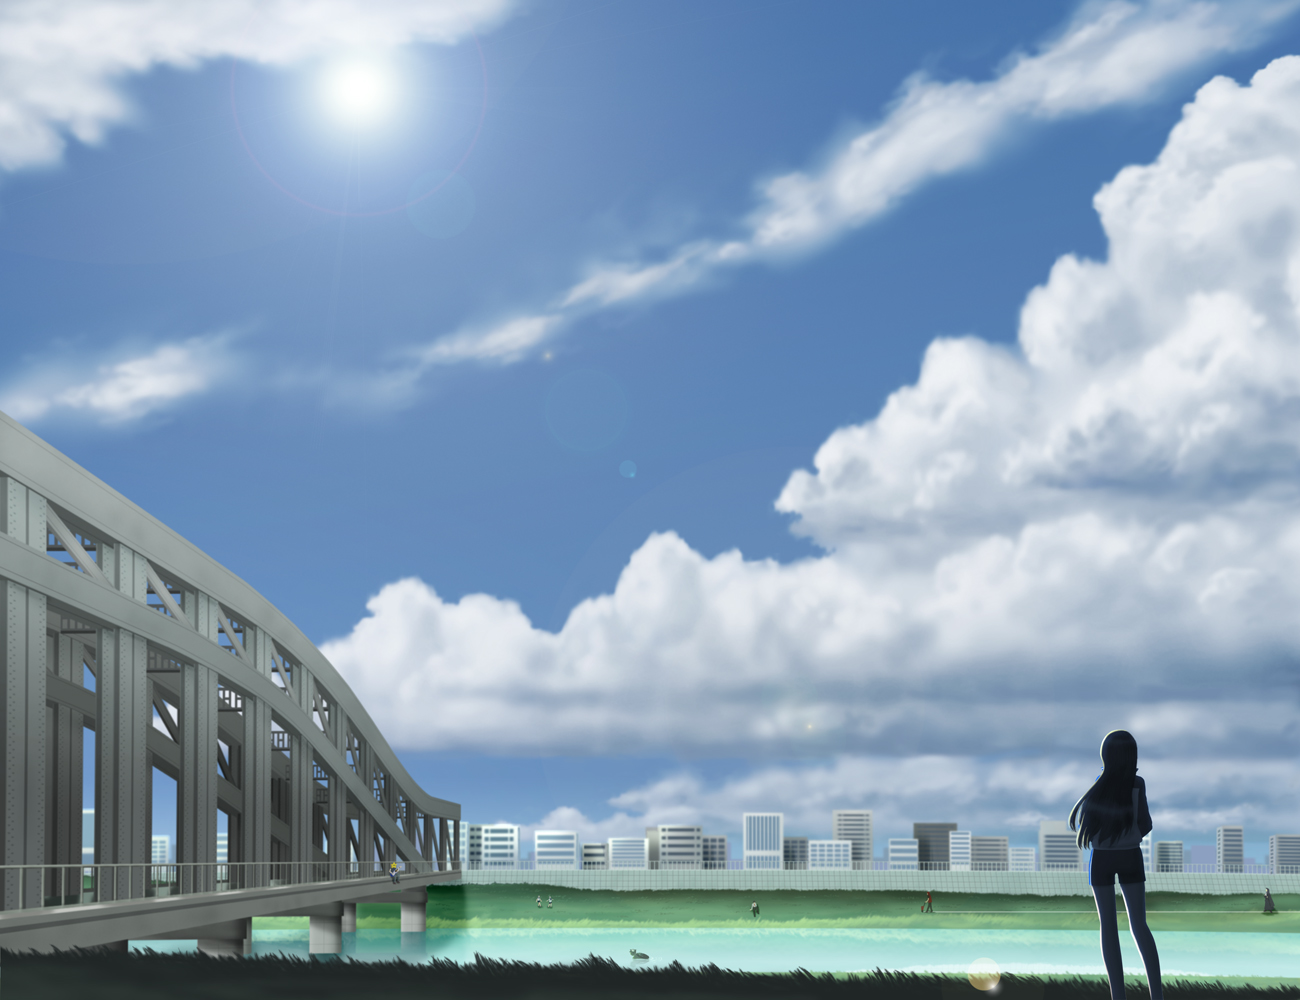 arakawa_under_the_bridge siraha